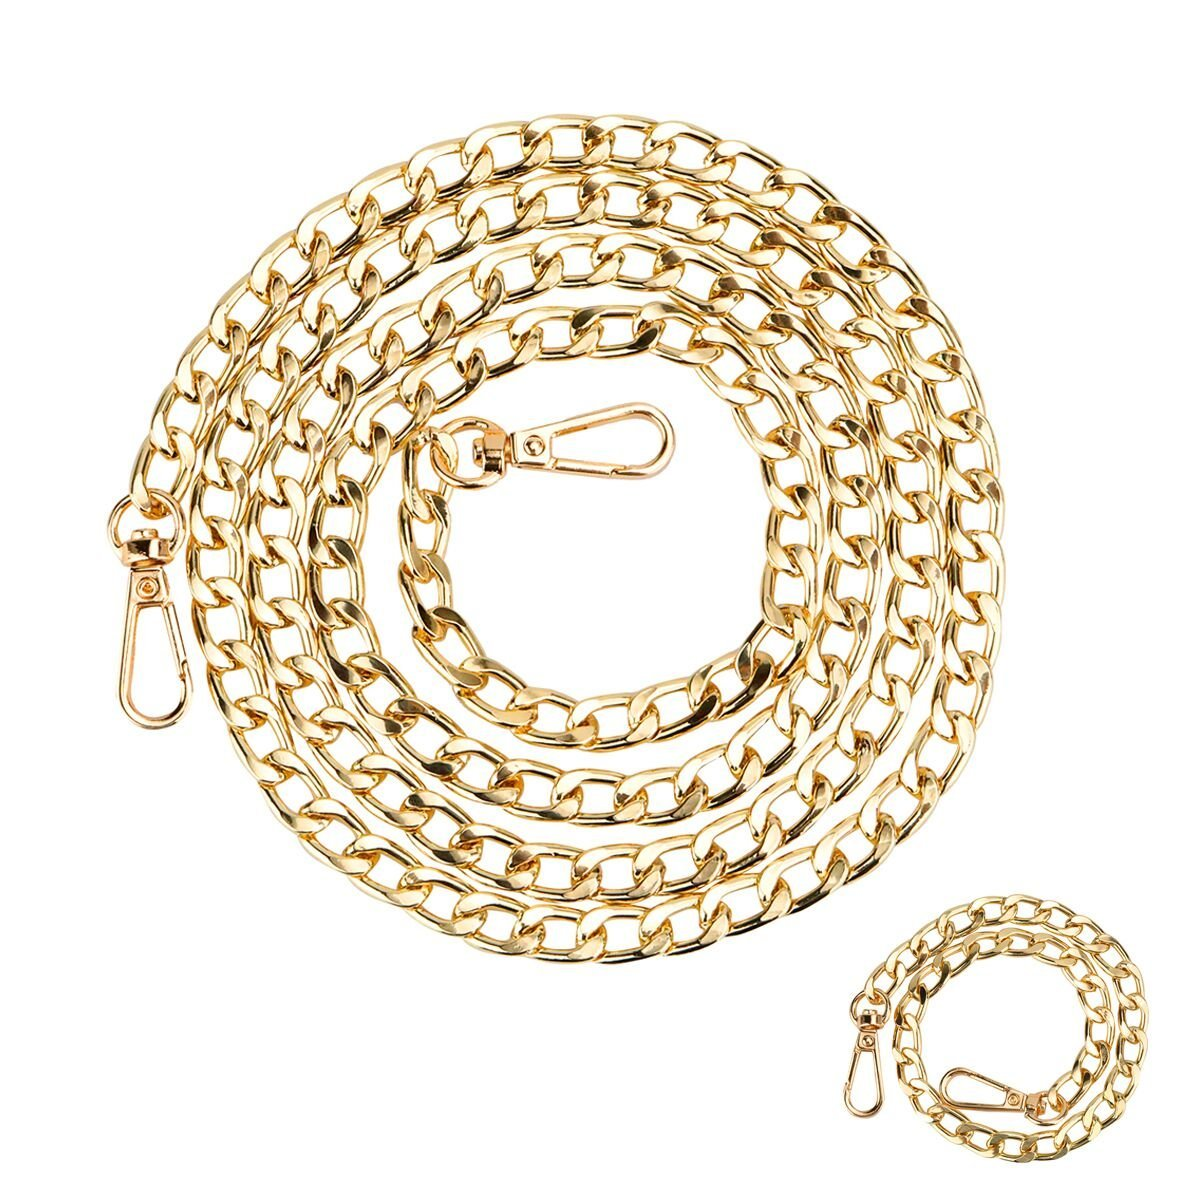 Purse Chain Strap - Replacement Strap or Handle for Crossbody Bags, Handbags, 51 & 15 inch Long, 2PCS, Gold, by Beaulegan PurseStrap003-gold-130+40